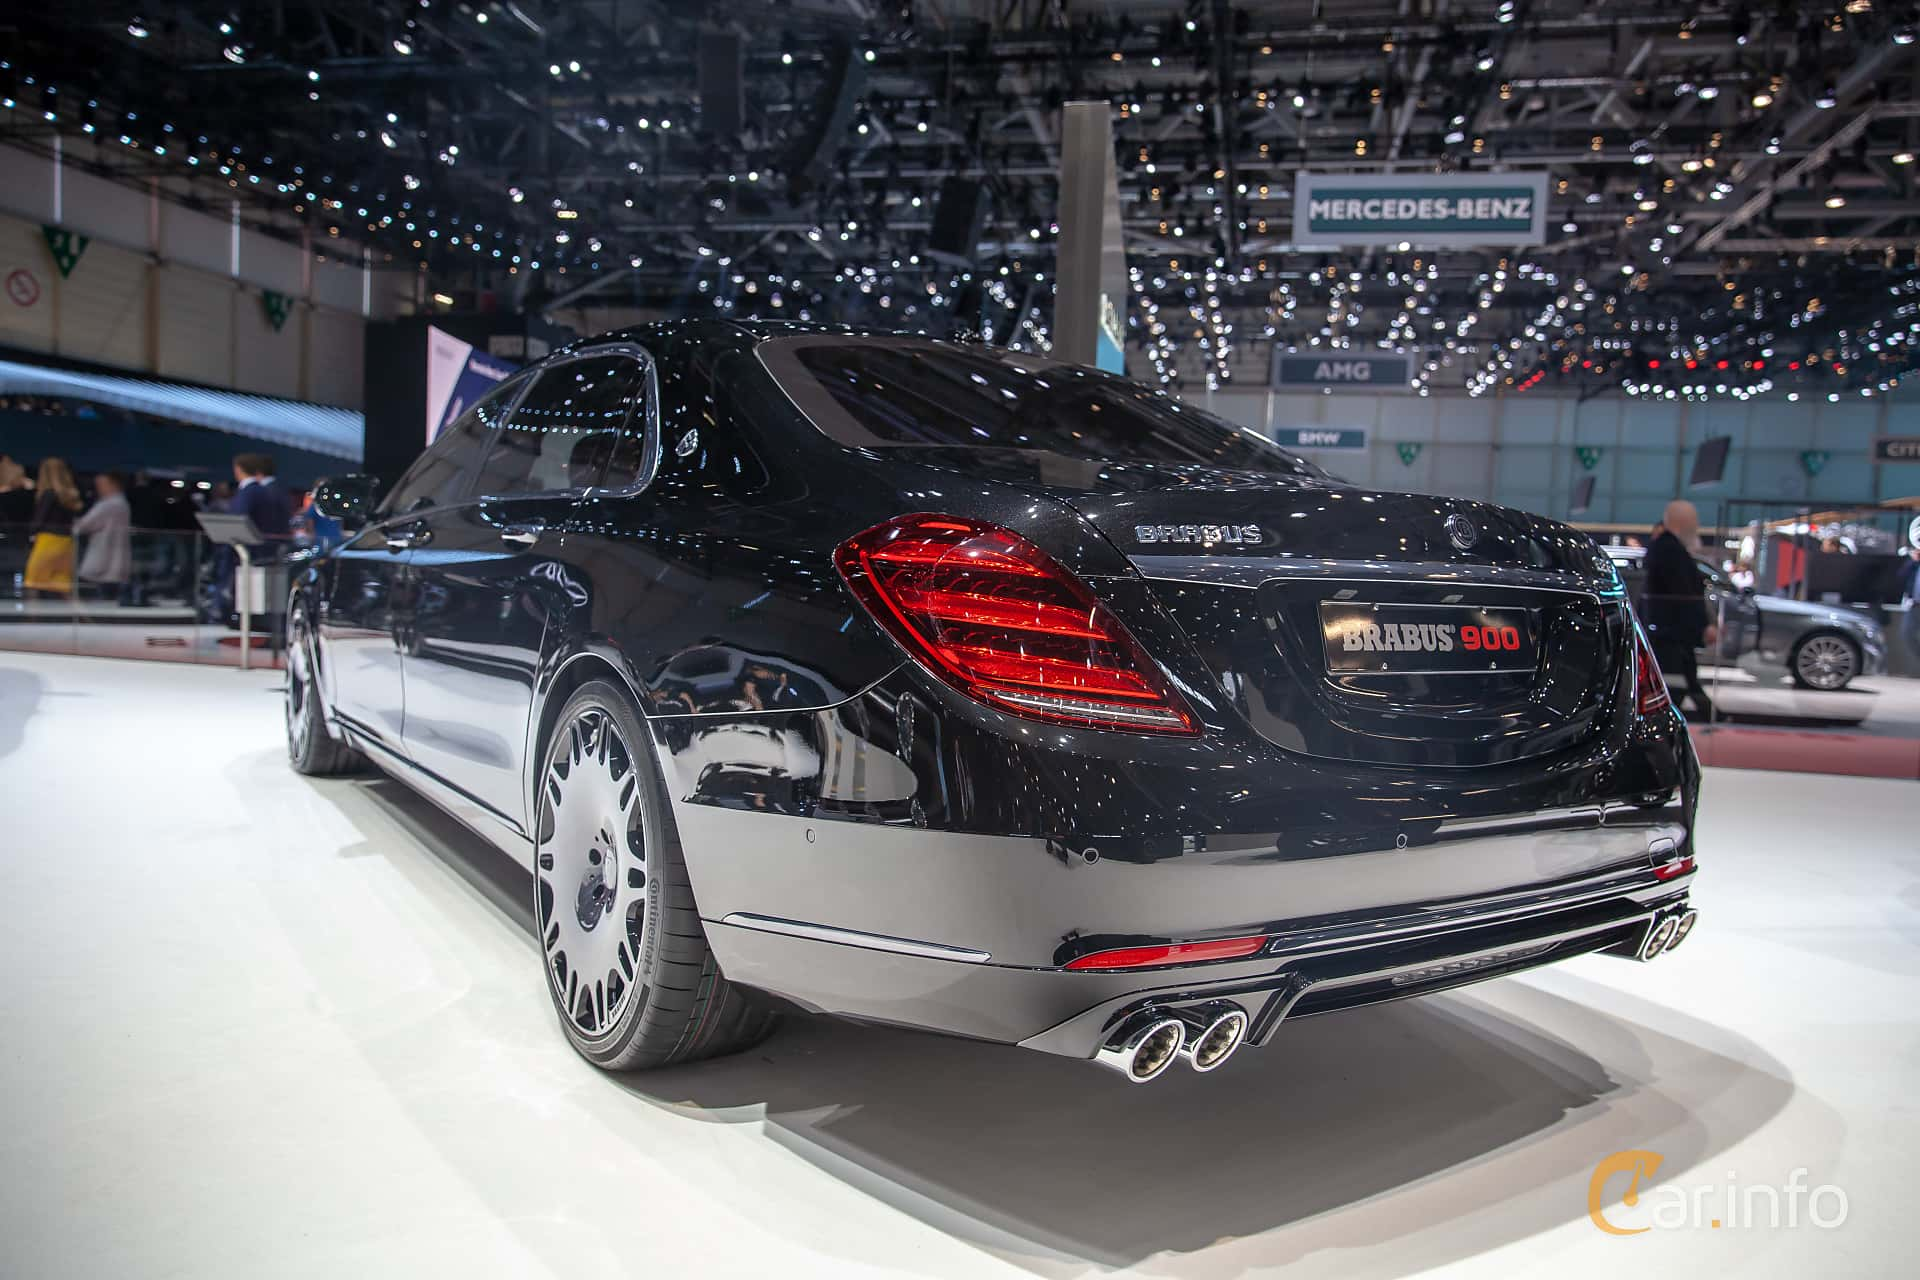 Back/Side of Brabus S 900 Maybach  9G-Tronic, 900ps, 2019 at Geneva Motor Show 2019